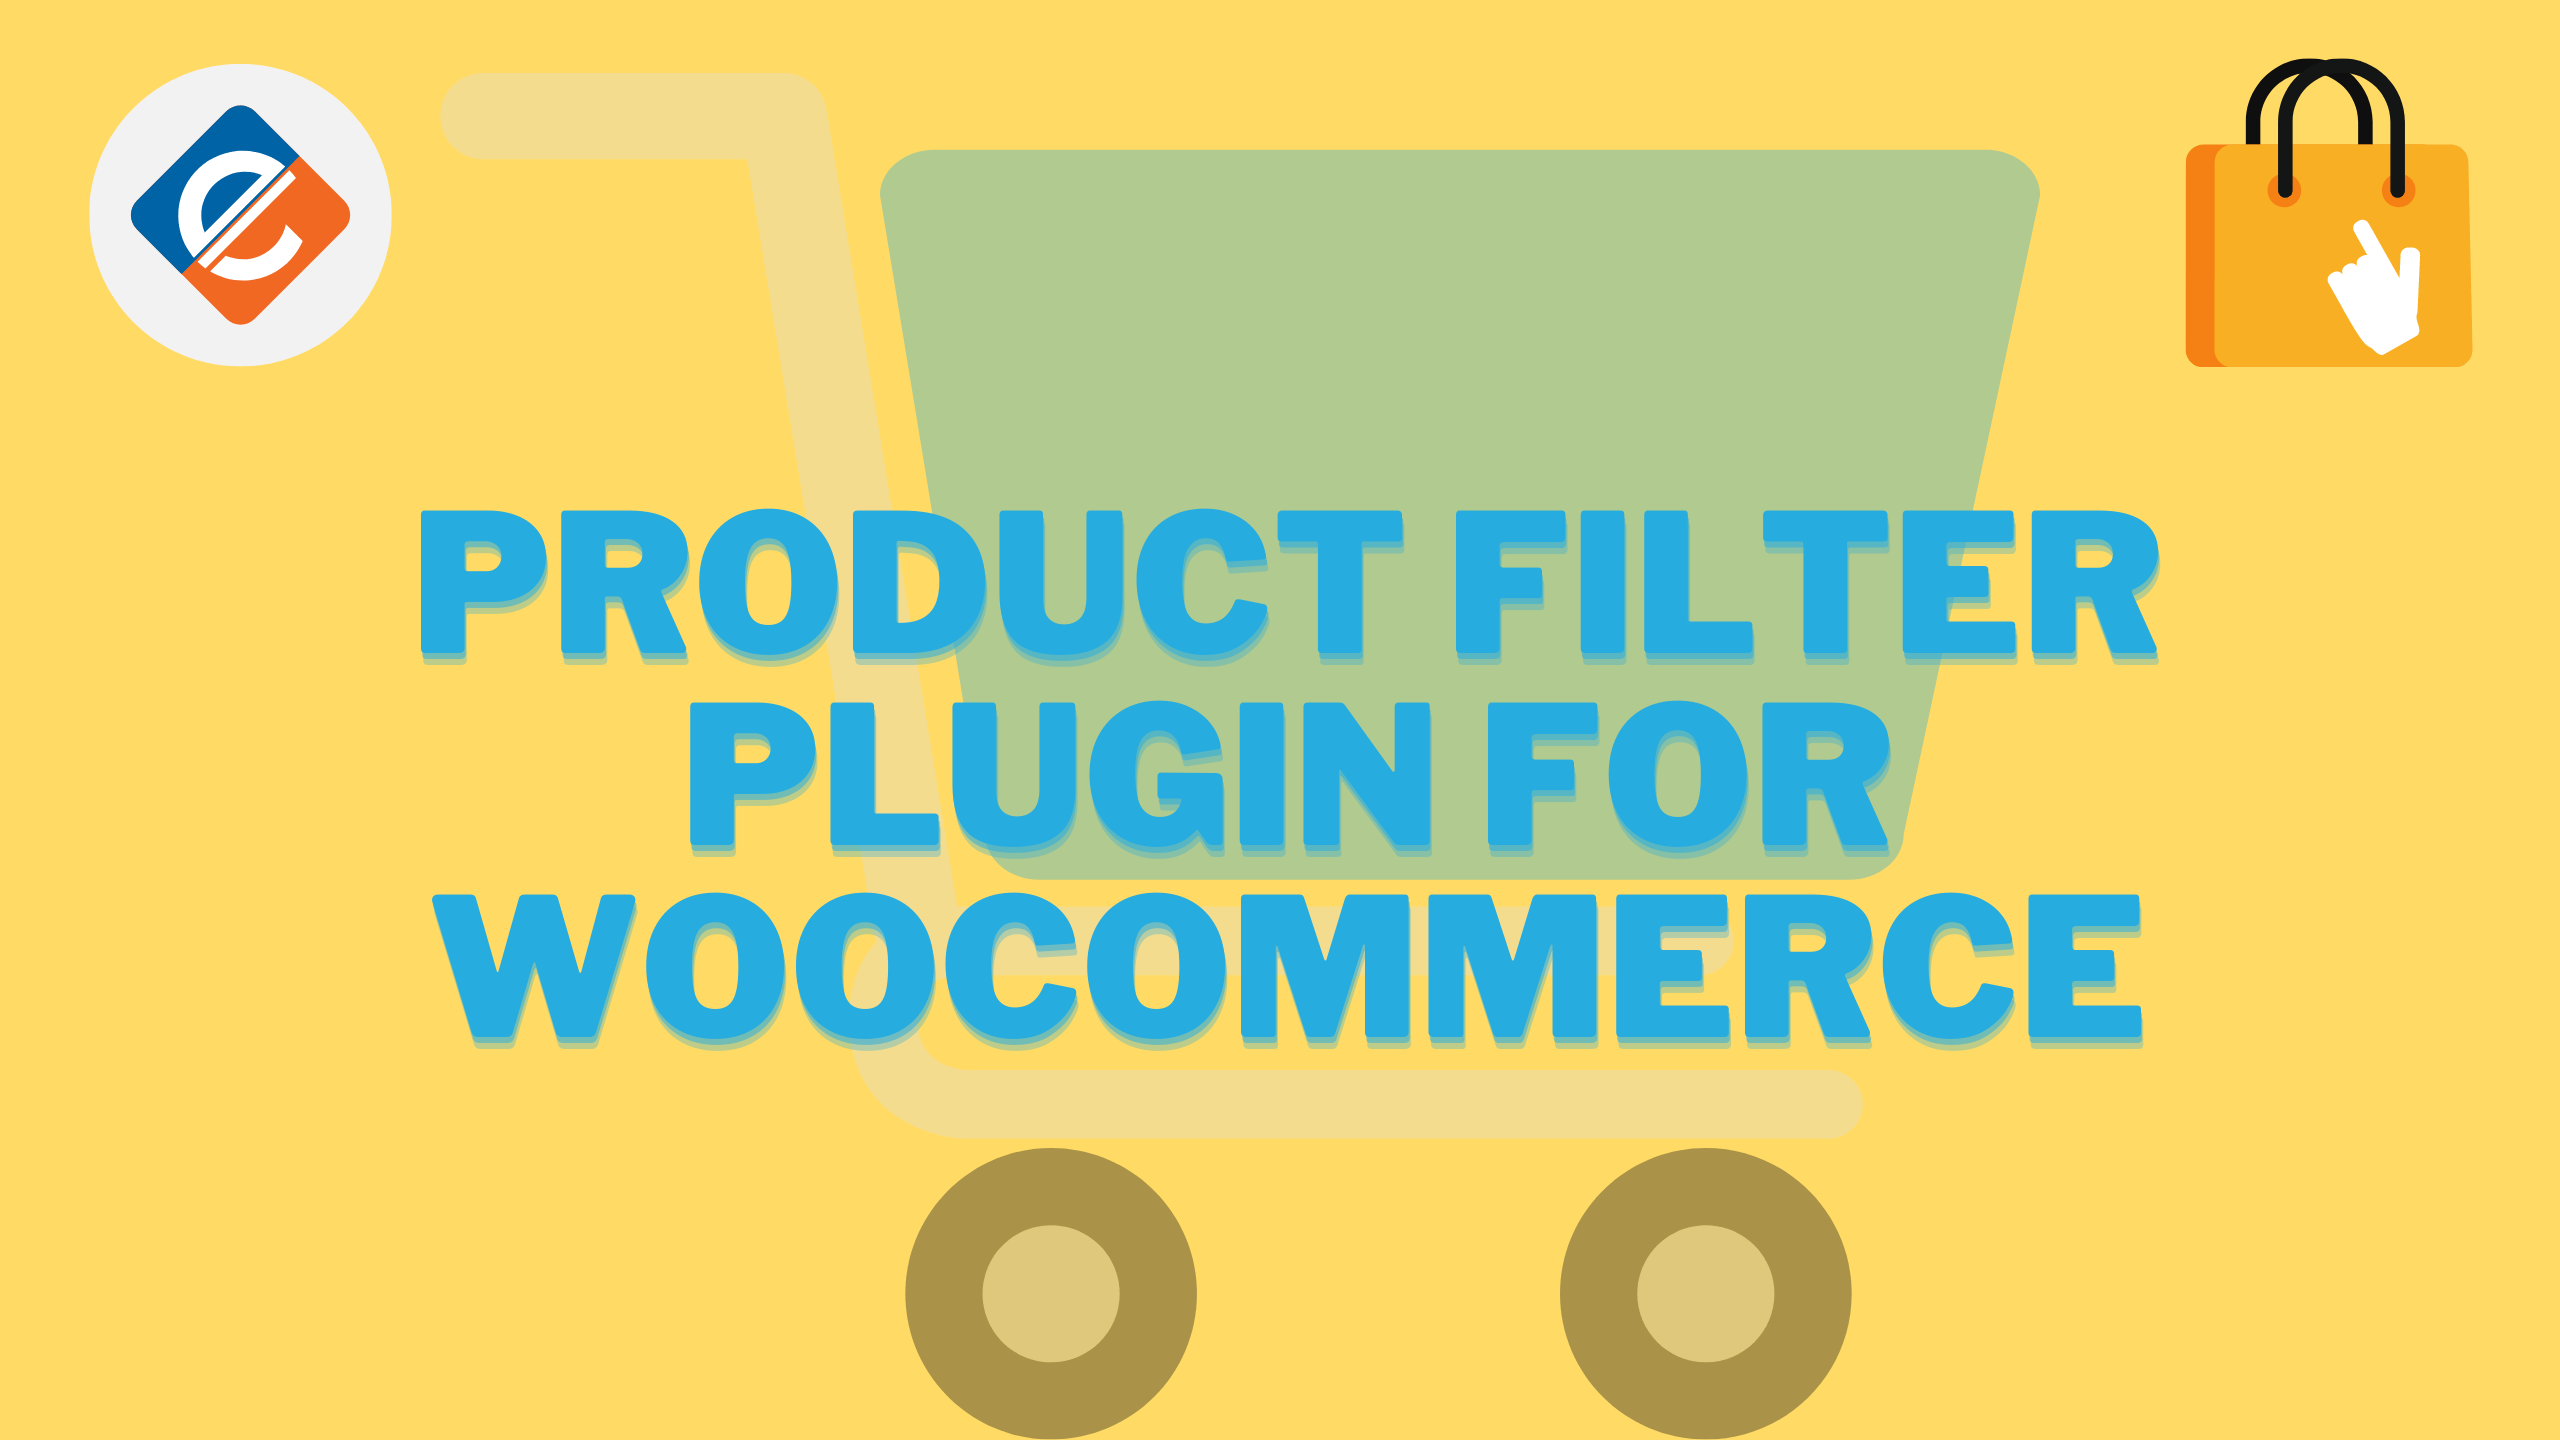 Product Filter Plugin for Woocommerce